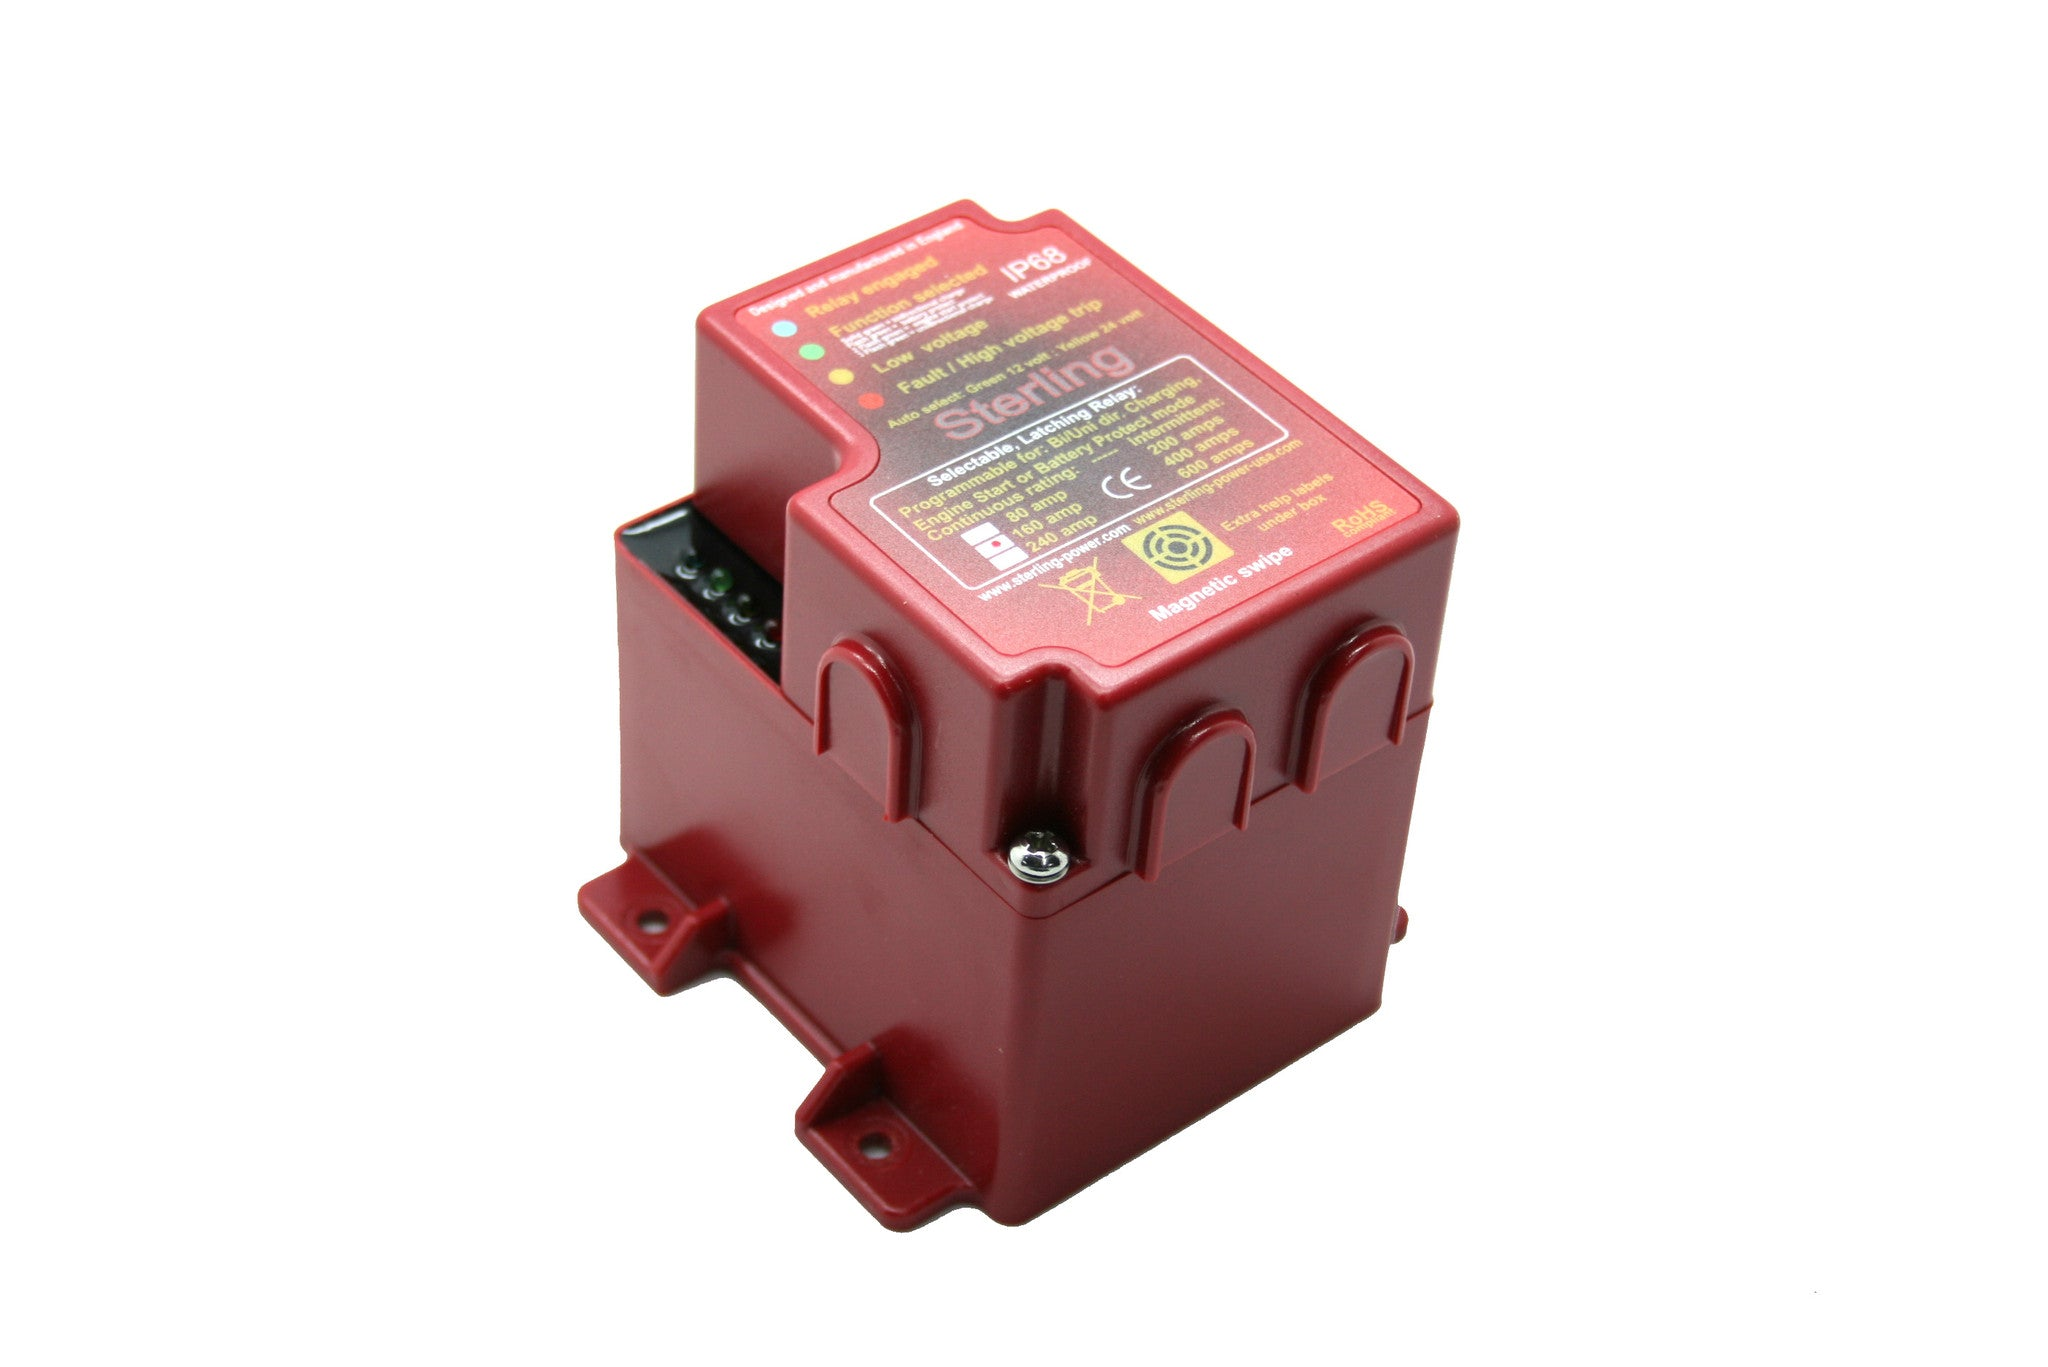 Latching Relay Pro Latch R Sterling Power Products The Wireless Remote Control Equipment Has Two Modes Latched